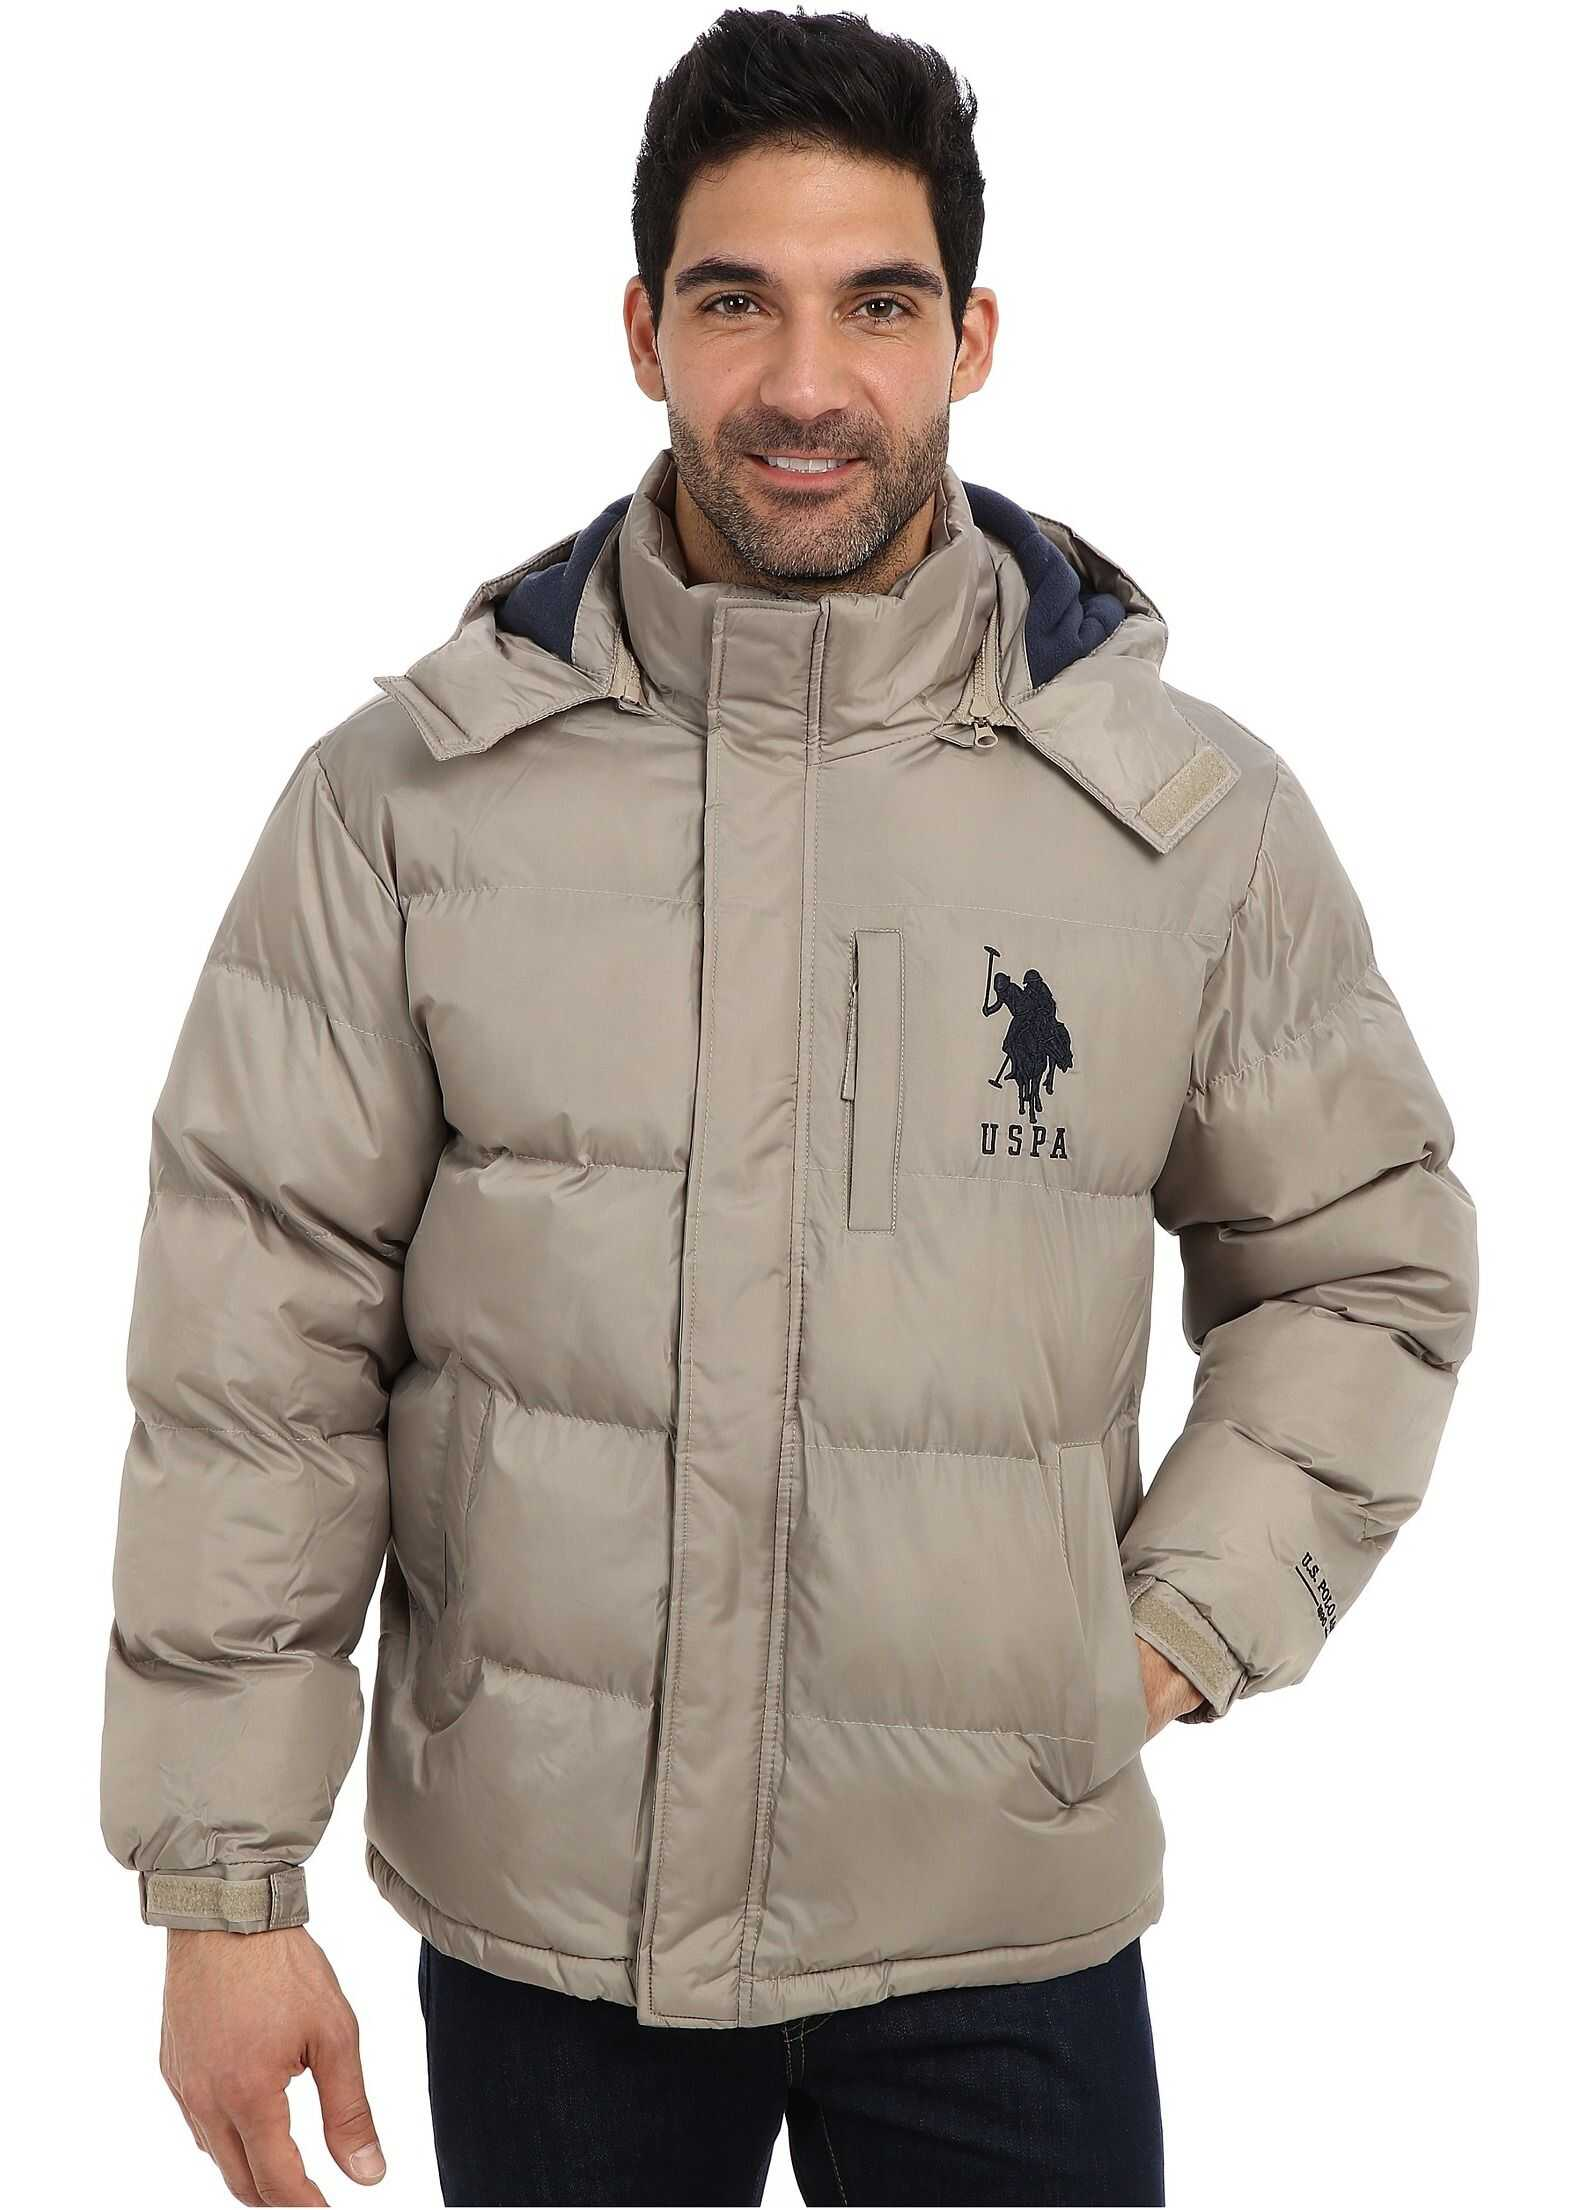 U.S. POLO ASSN. Classic Short Bubble Coat w/ Big Pony Thomston Khaki